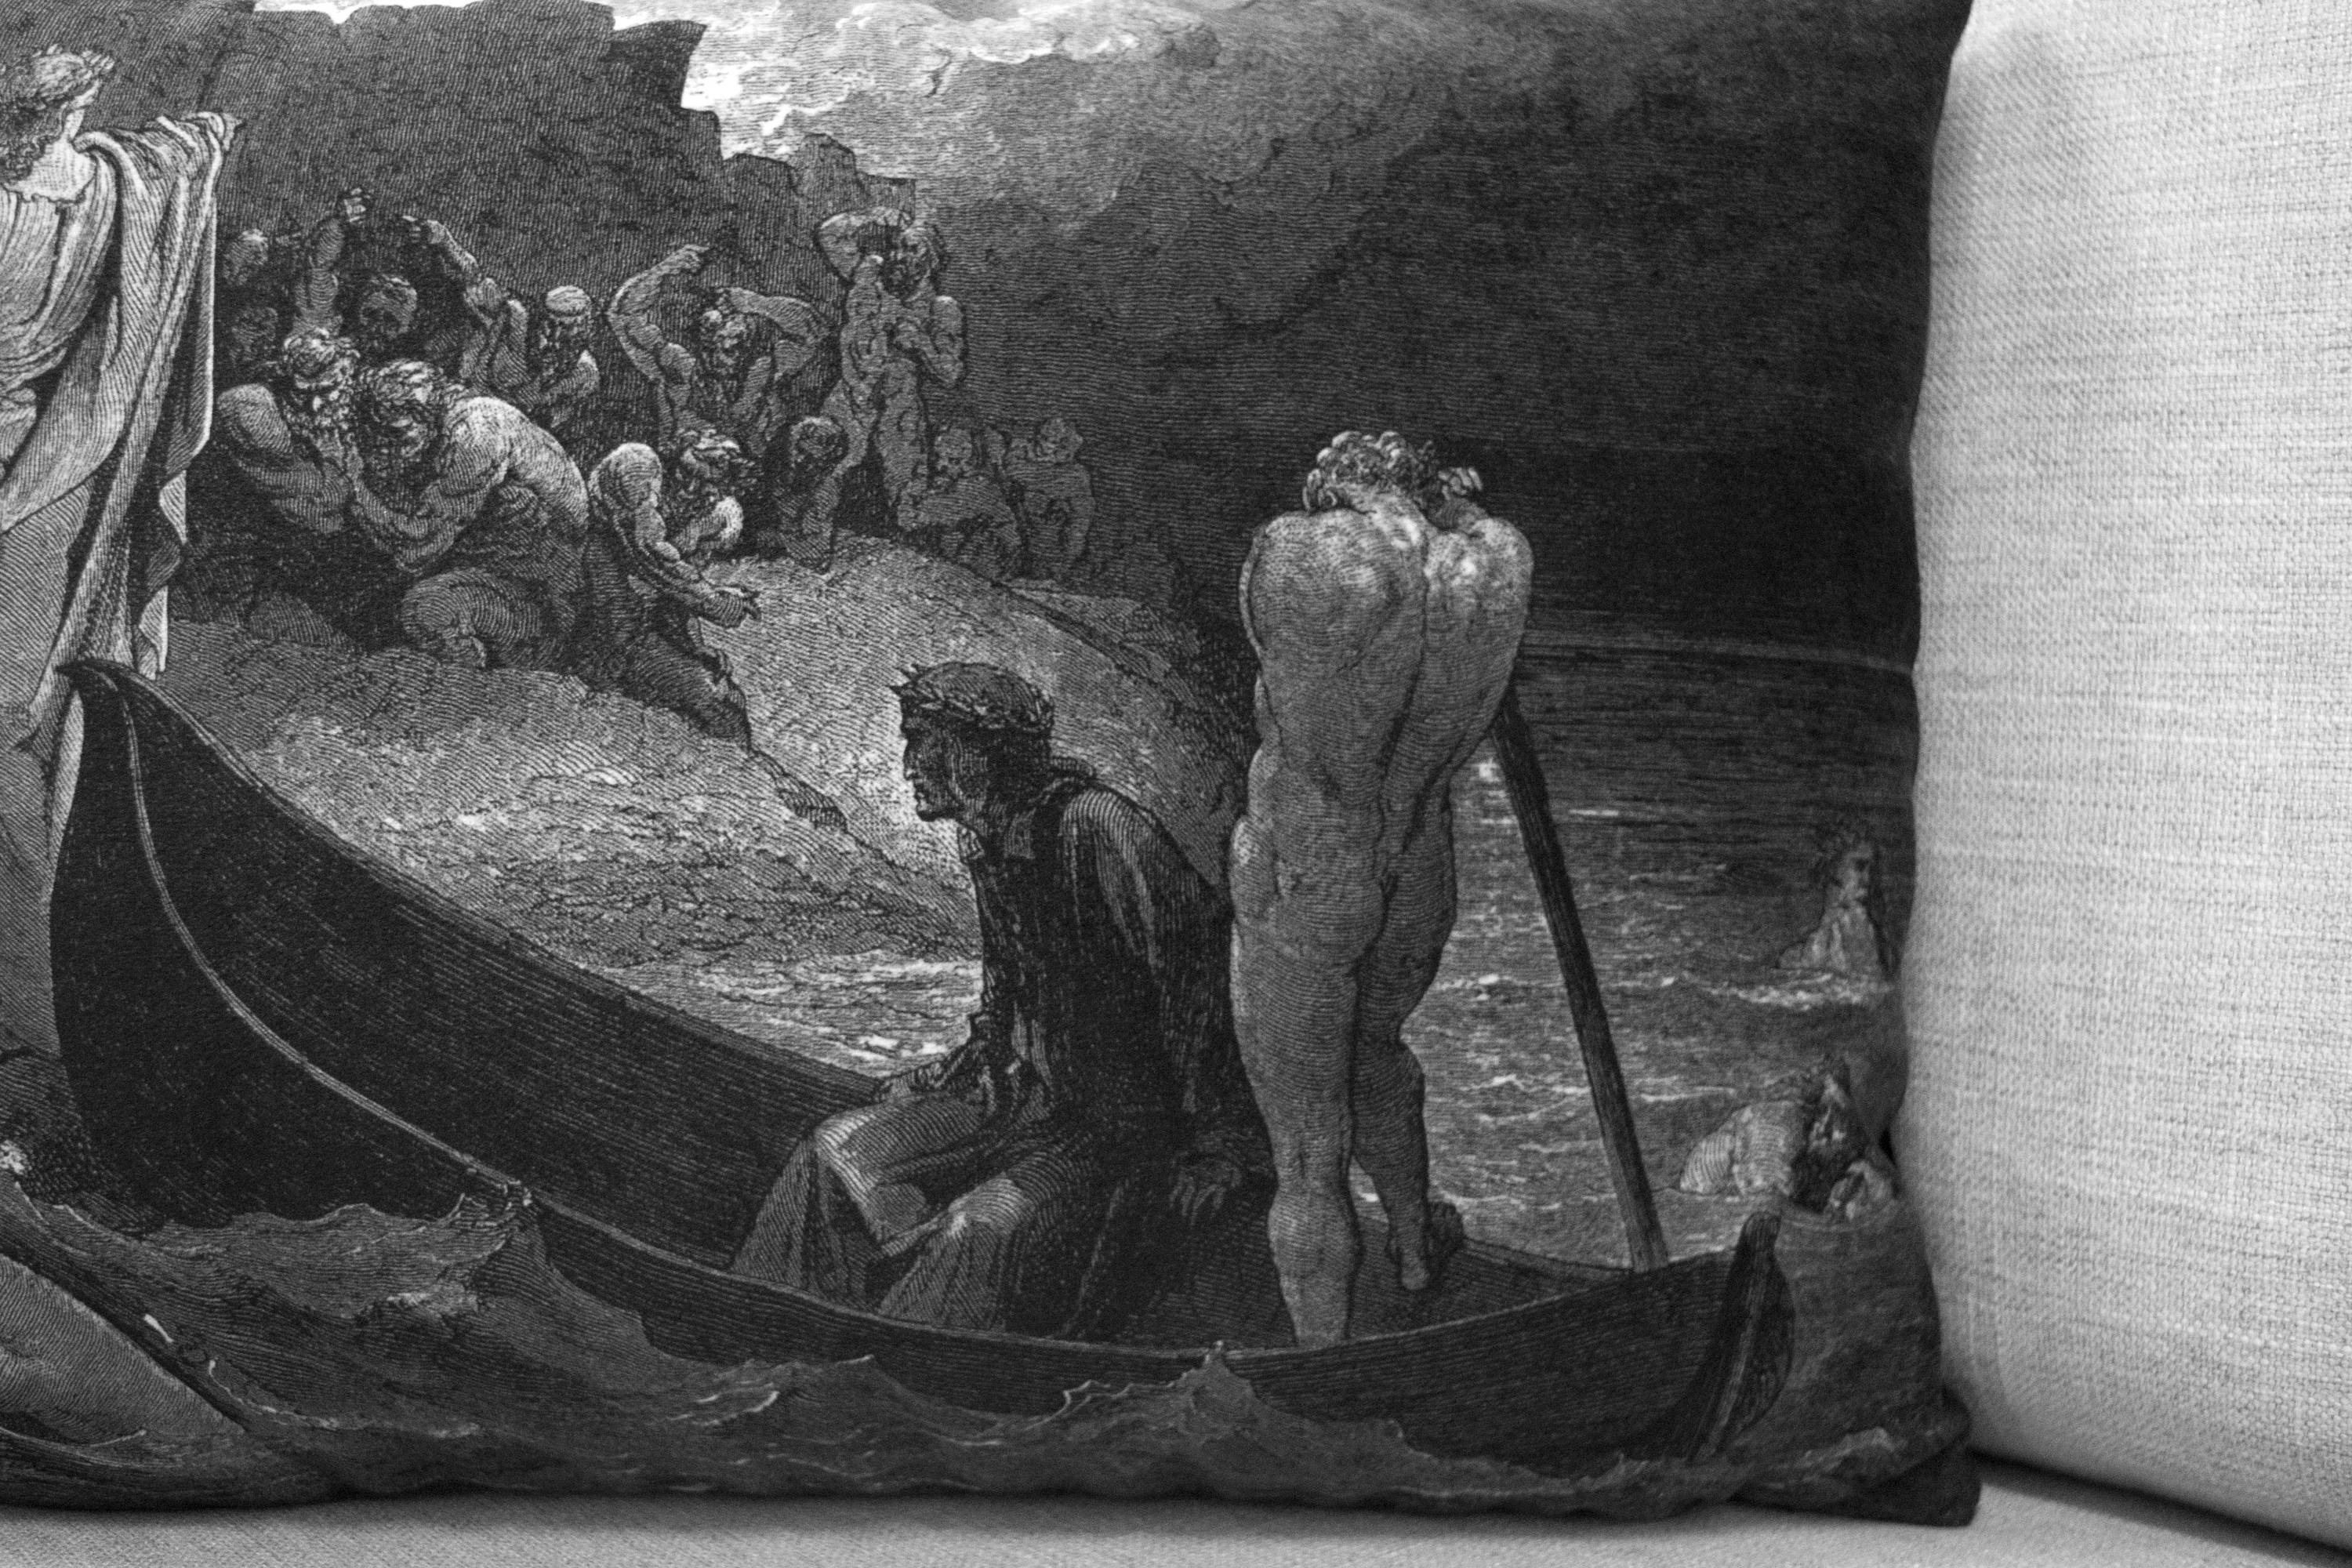 "virgil confronting the devils - the divine comedy illustration // dante's inferno - 14"" x 20"" velveteen pillow case - Gustave Doré, 1892"